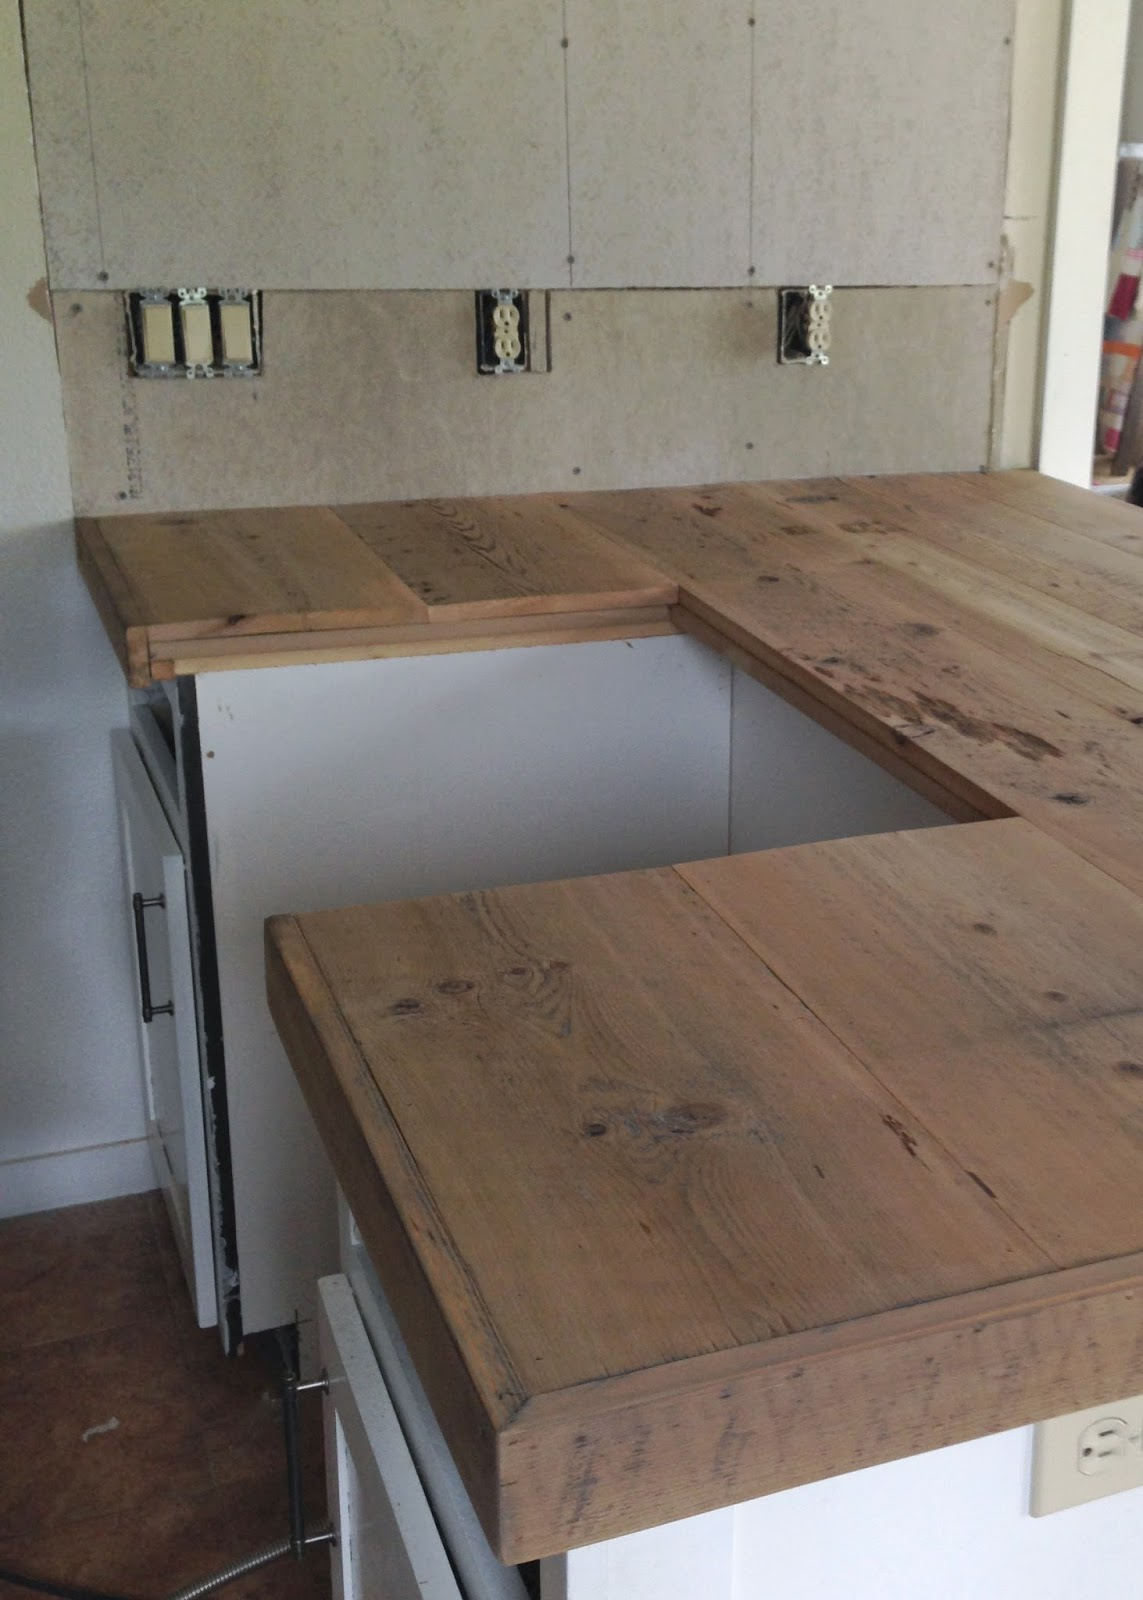 Diy reclaimed wood countertop averie lane diy reclaimed wood diy reclaimed wood countertop adding trim boards along edge solutioingenieria